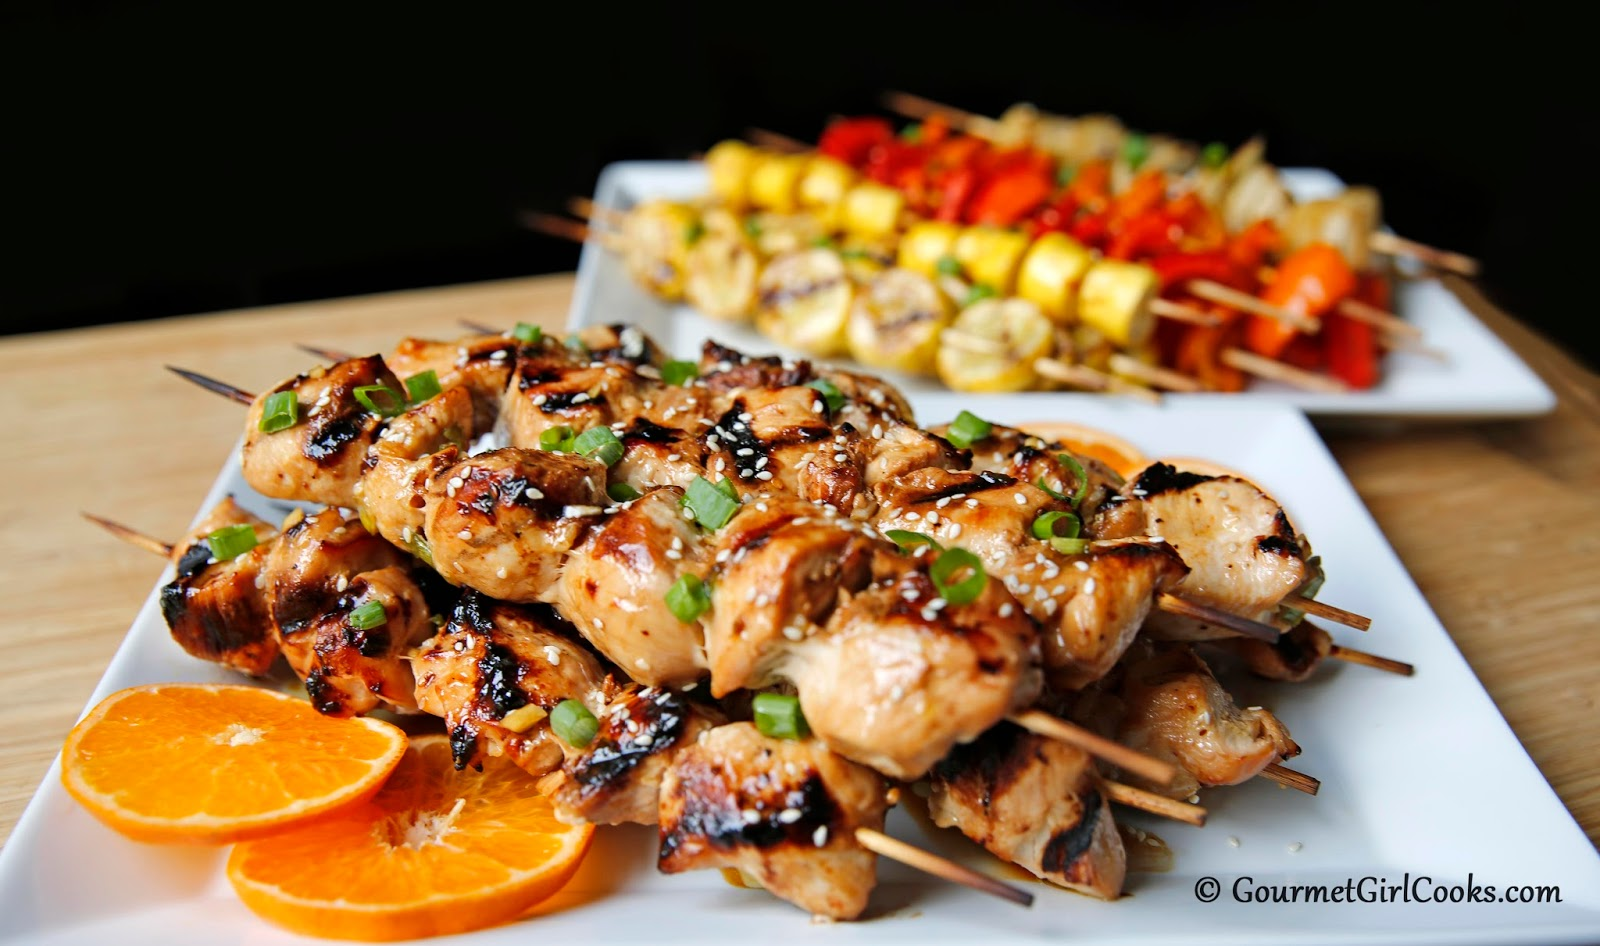 Gourmet Girl Cooks: Grilled Asian Style Chicken Kabobs